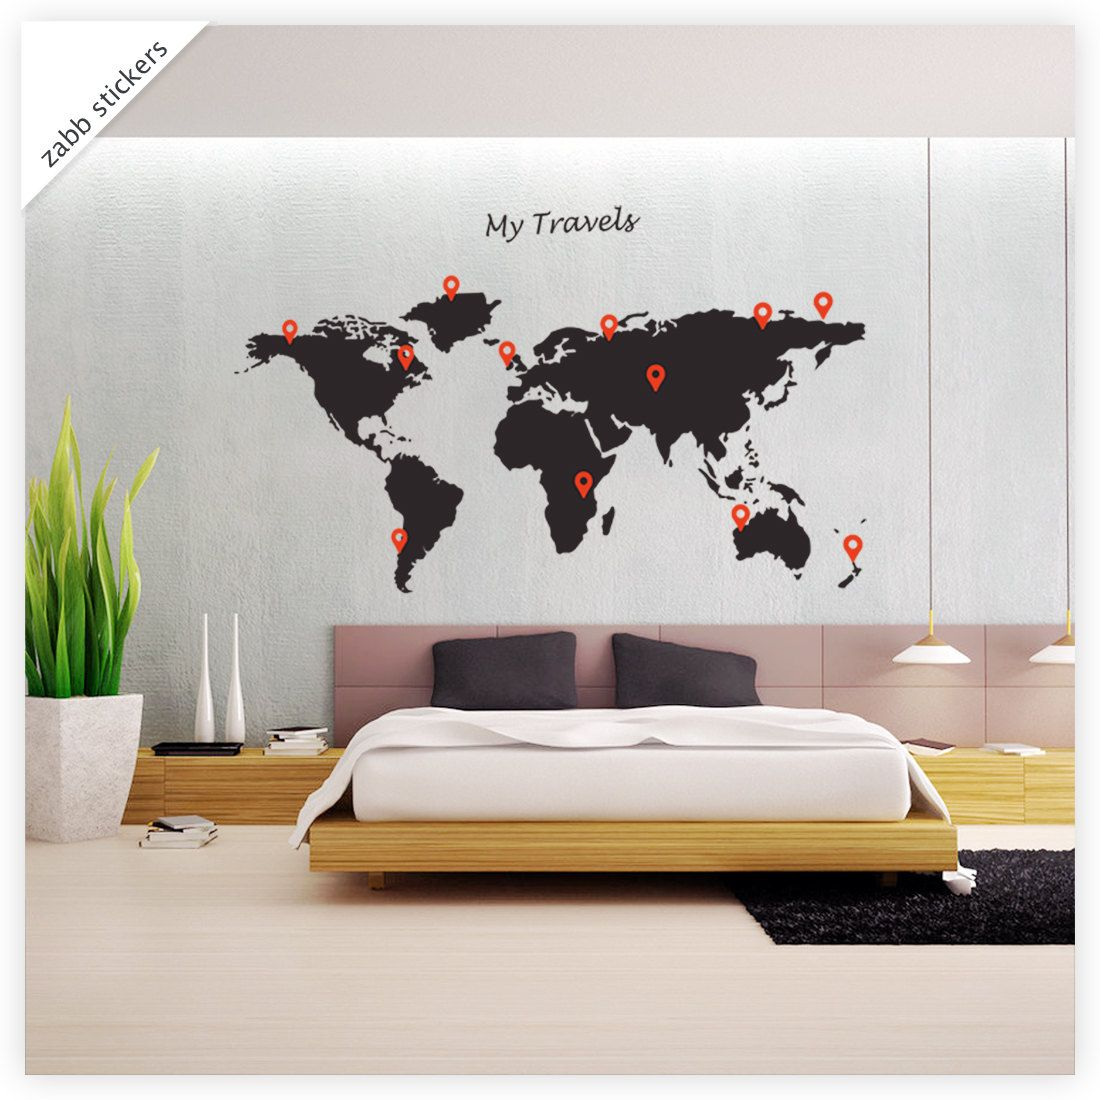 Map wall decal globe world my travels and markers vinyl wall items similar to world map wall stickers wall decal wall sticker home wall decor matt black large 111cm x 55cm zabb on etsy gumiabroncs Gallery